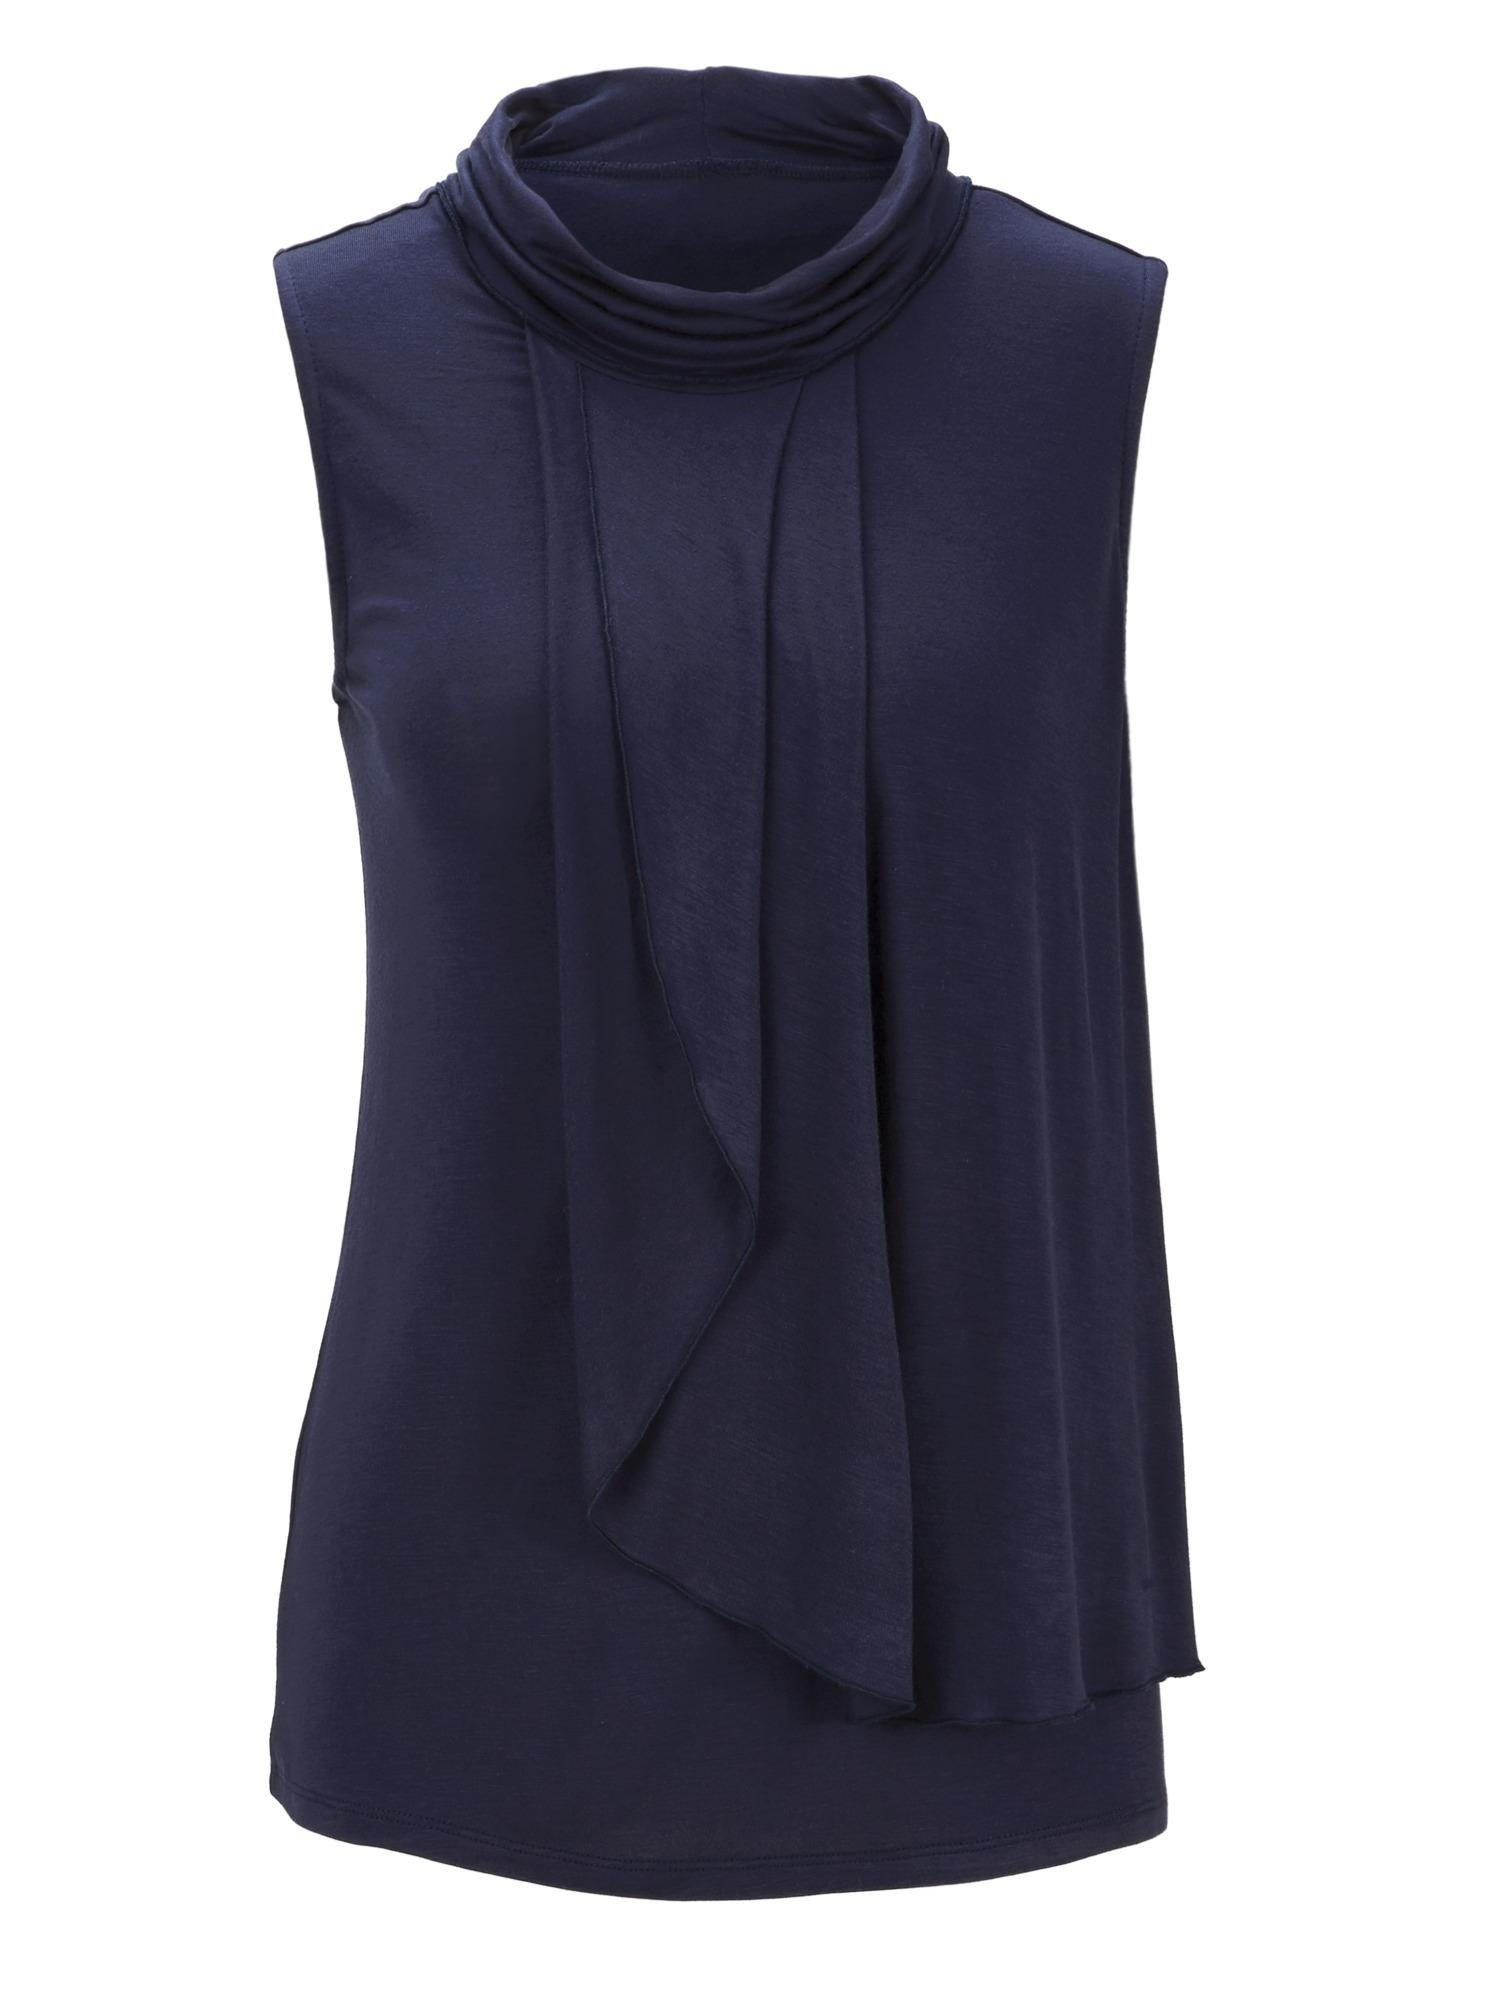 Shirttop Snel Shirttop Snel Gevonden Gevonden Snel Shirttop HID9WE2